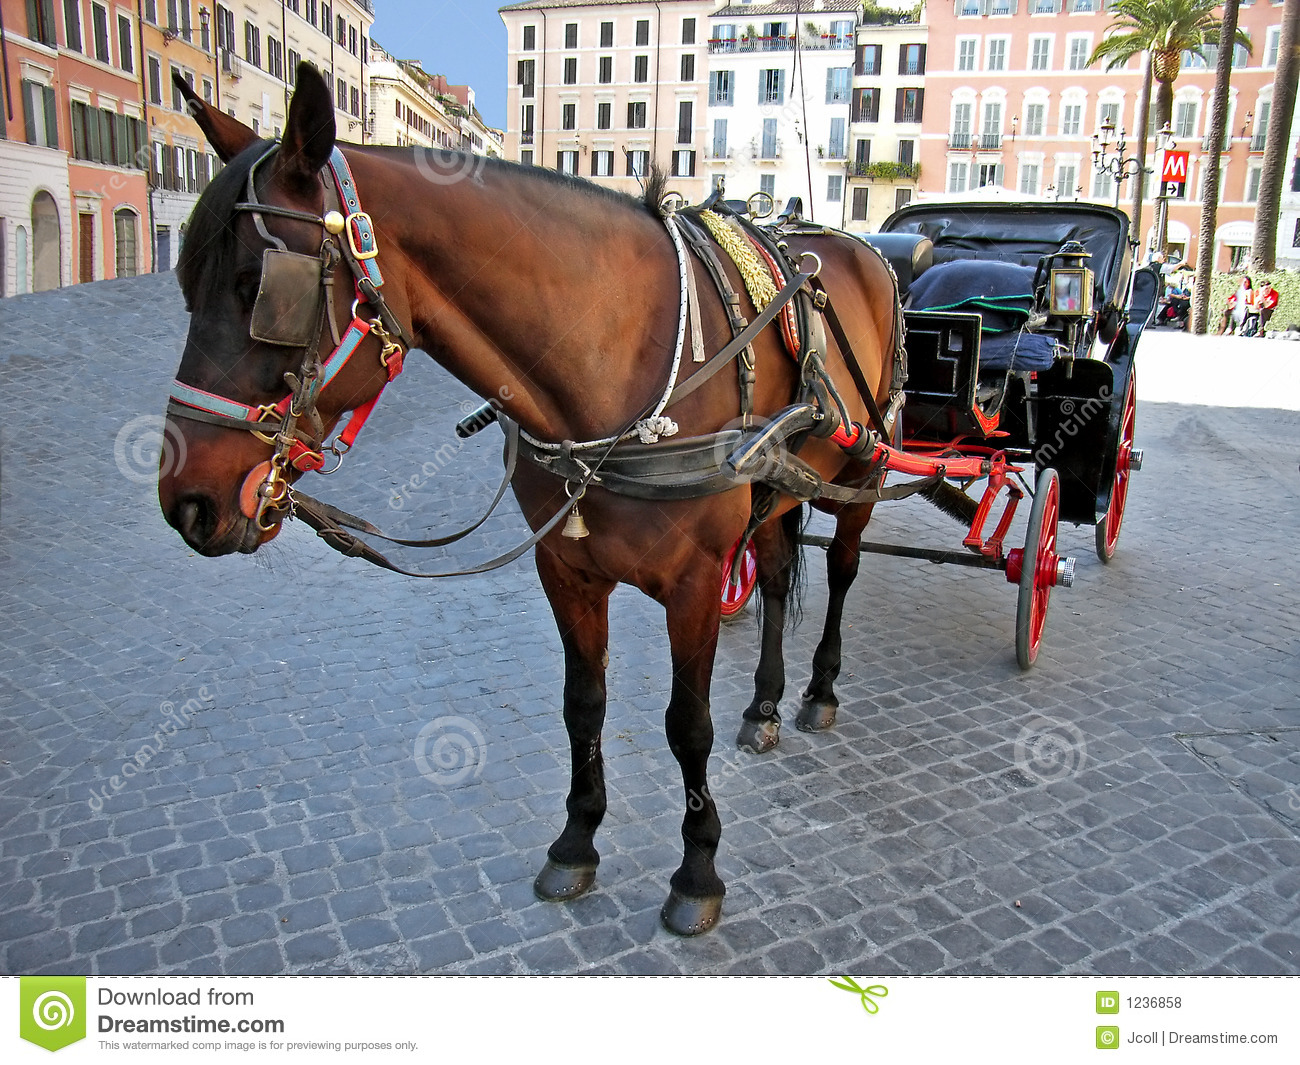 Horse coach in rome royalty free stock photos image 1236858 for Foto di cavalli da stampare